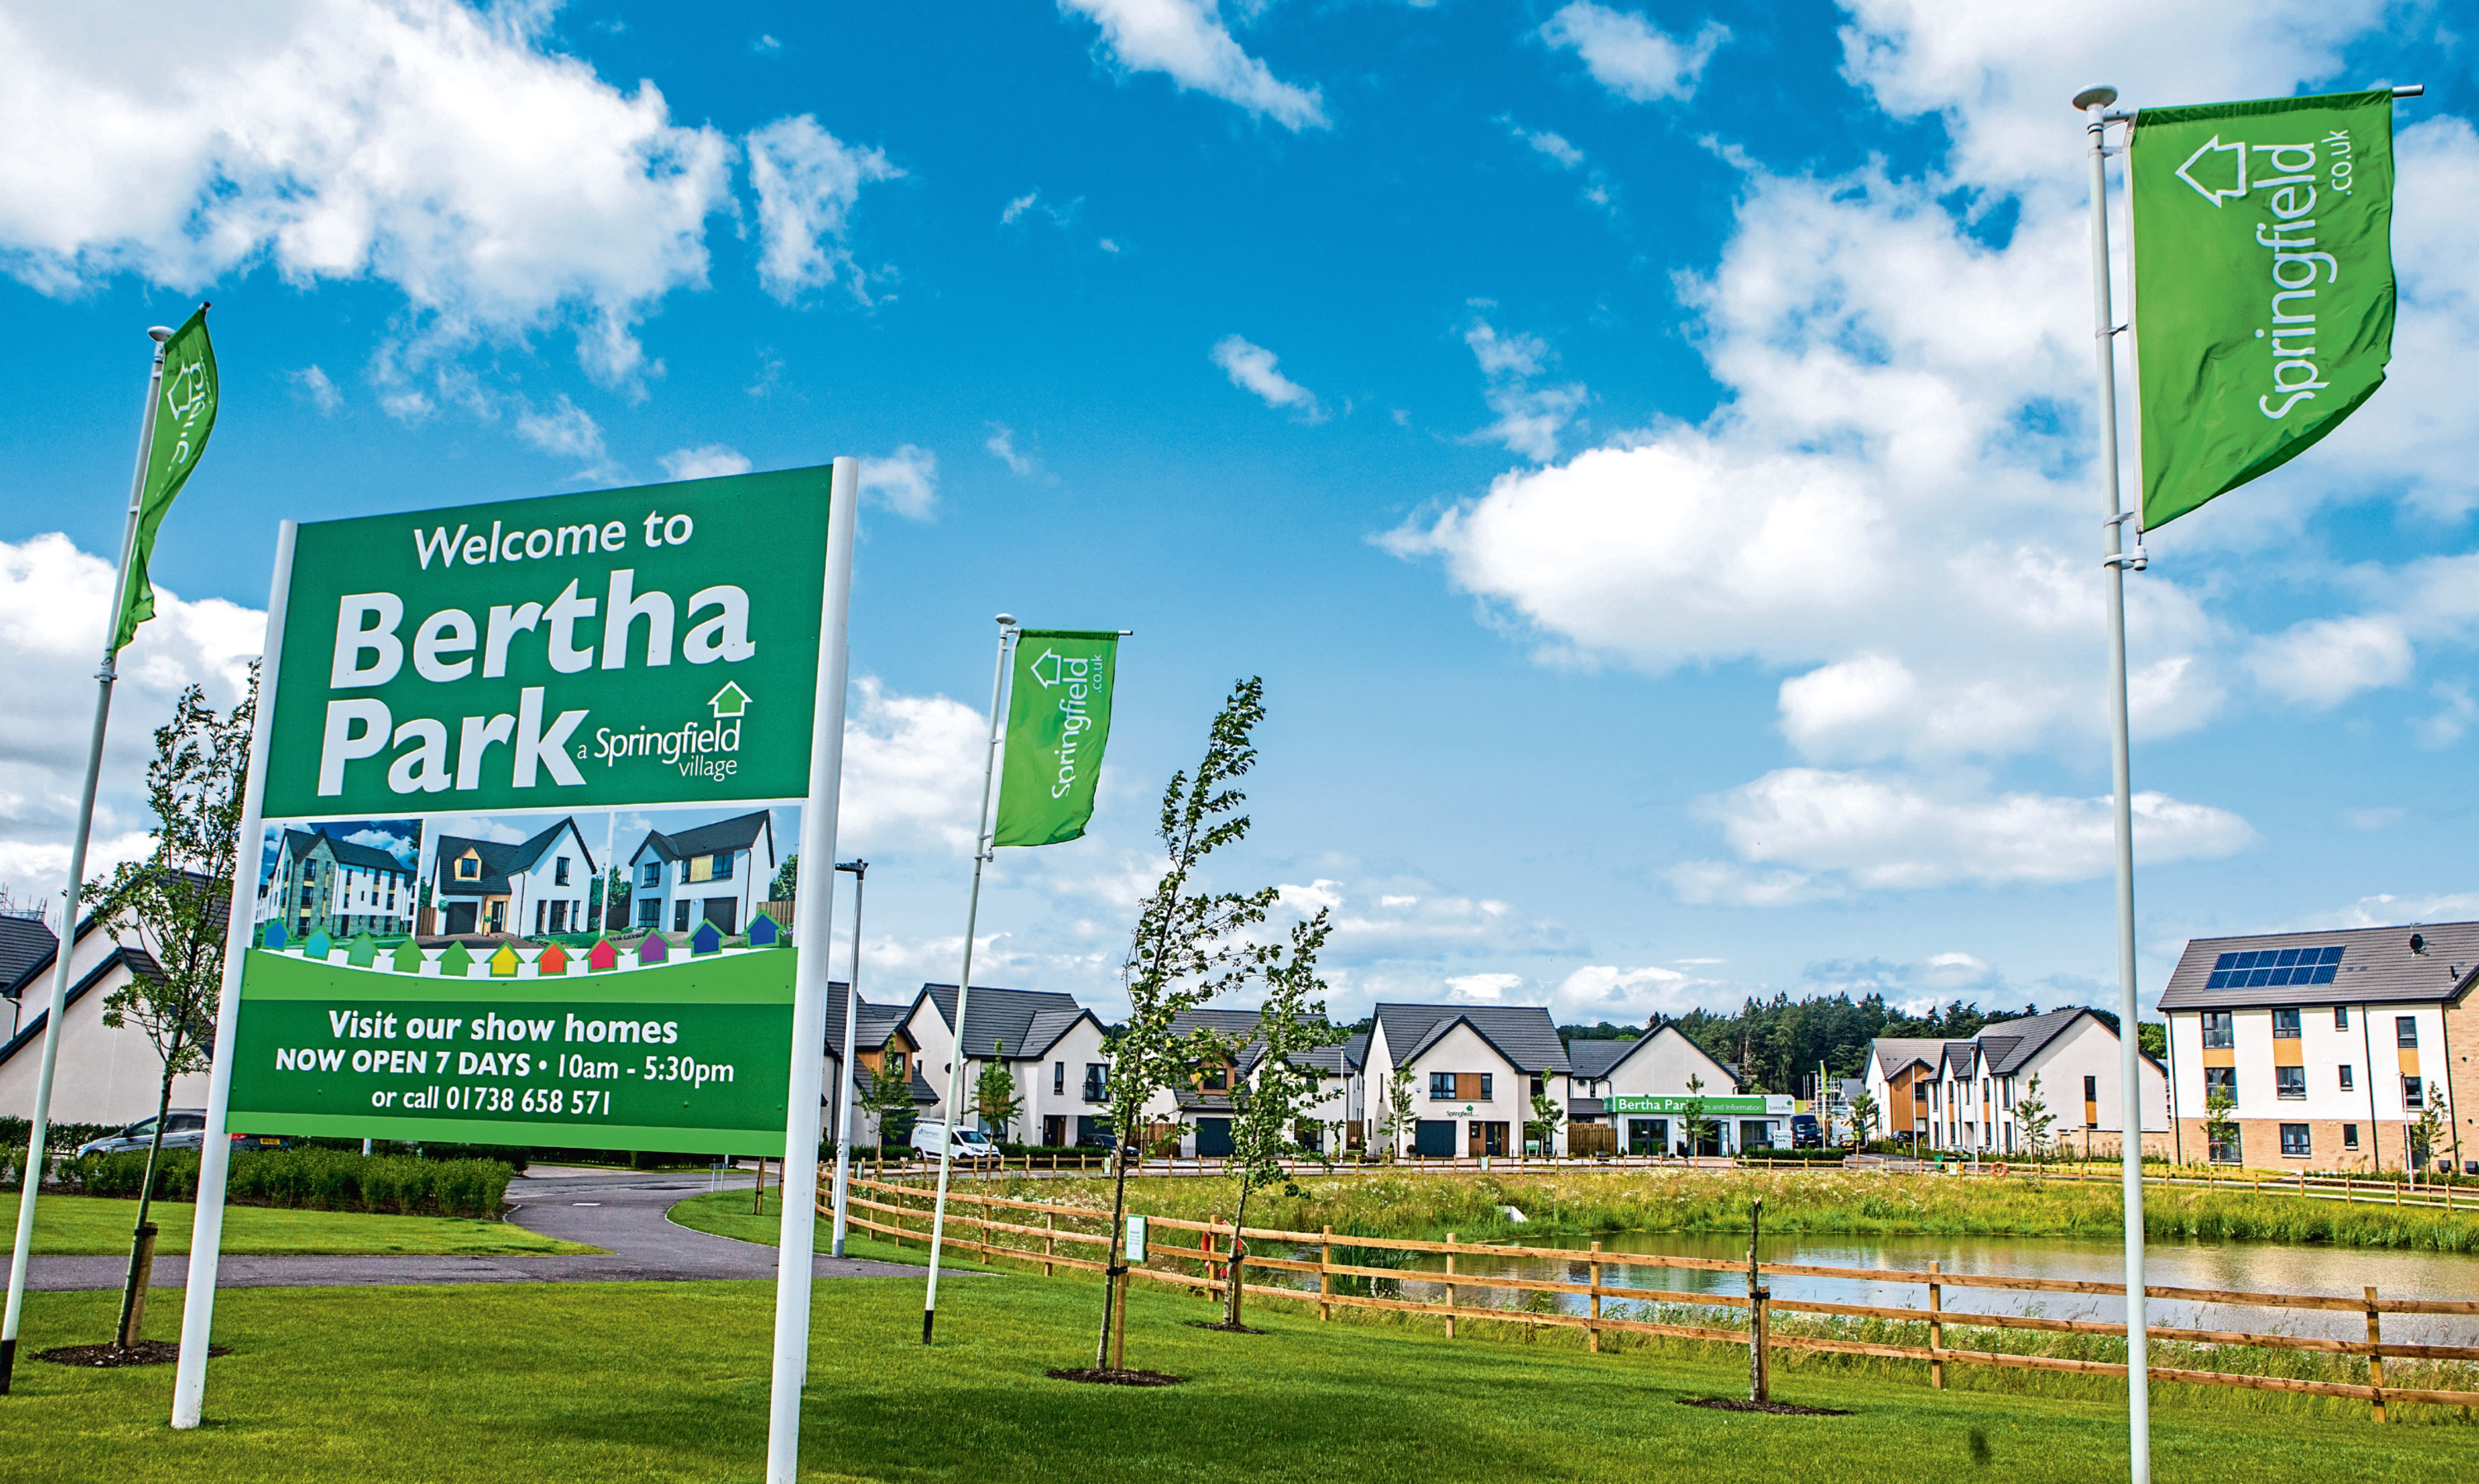 The Bertha Park development in Perth